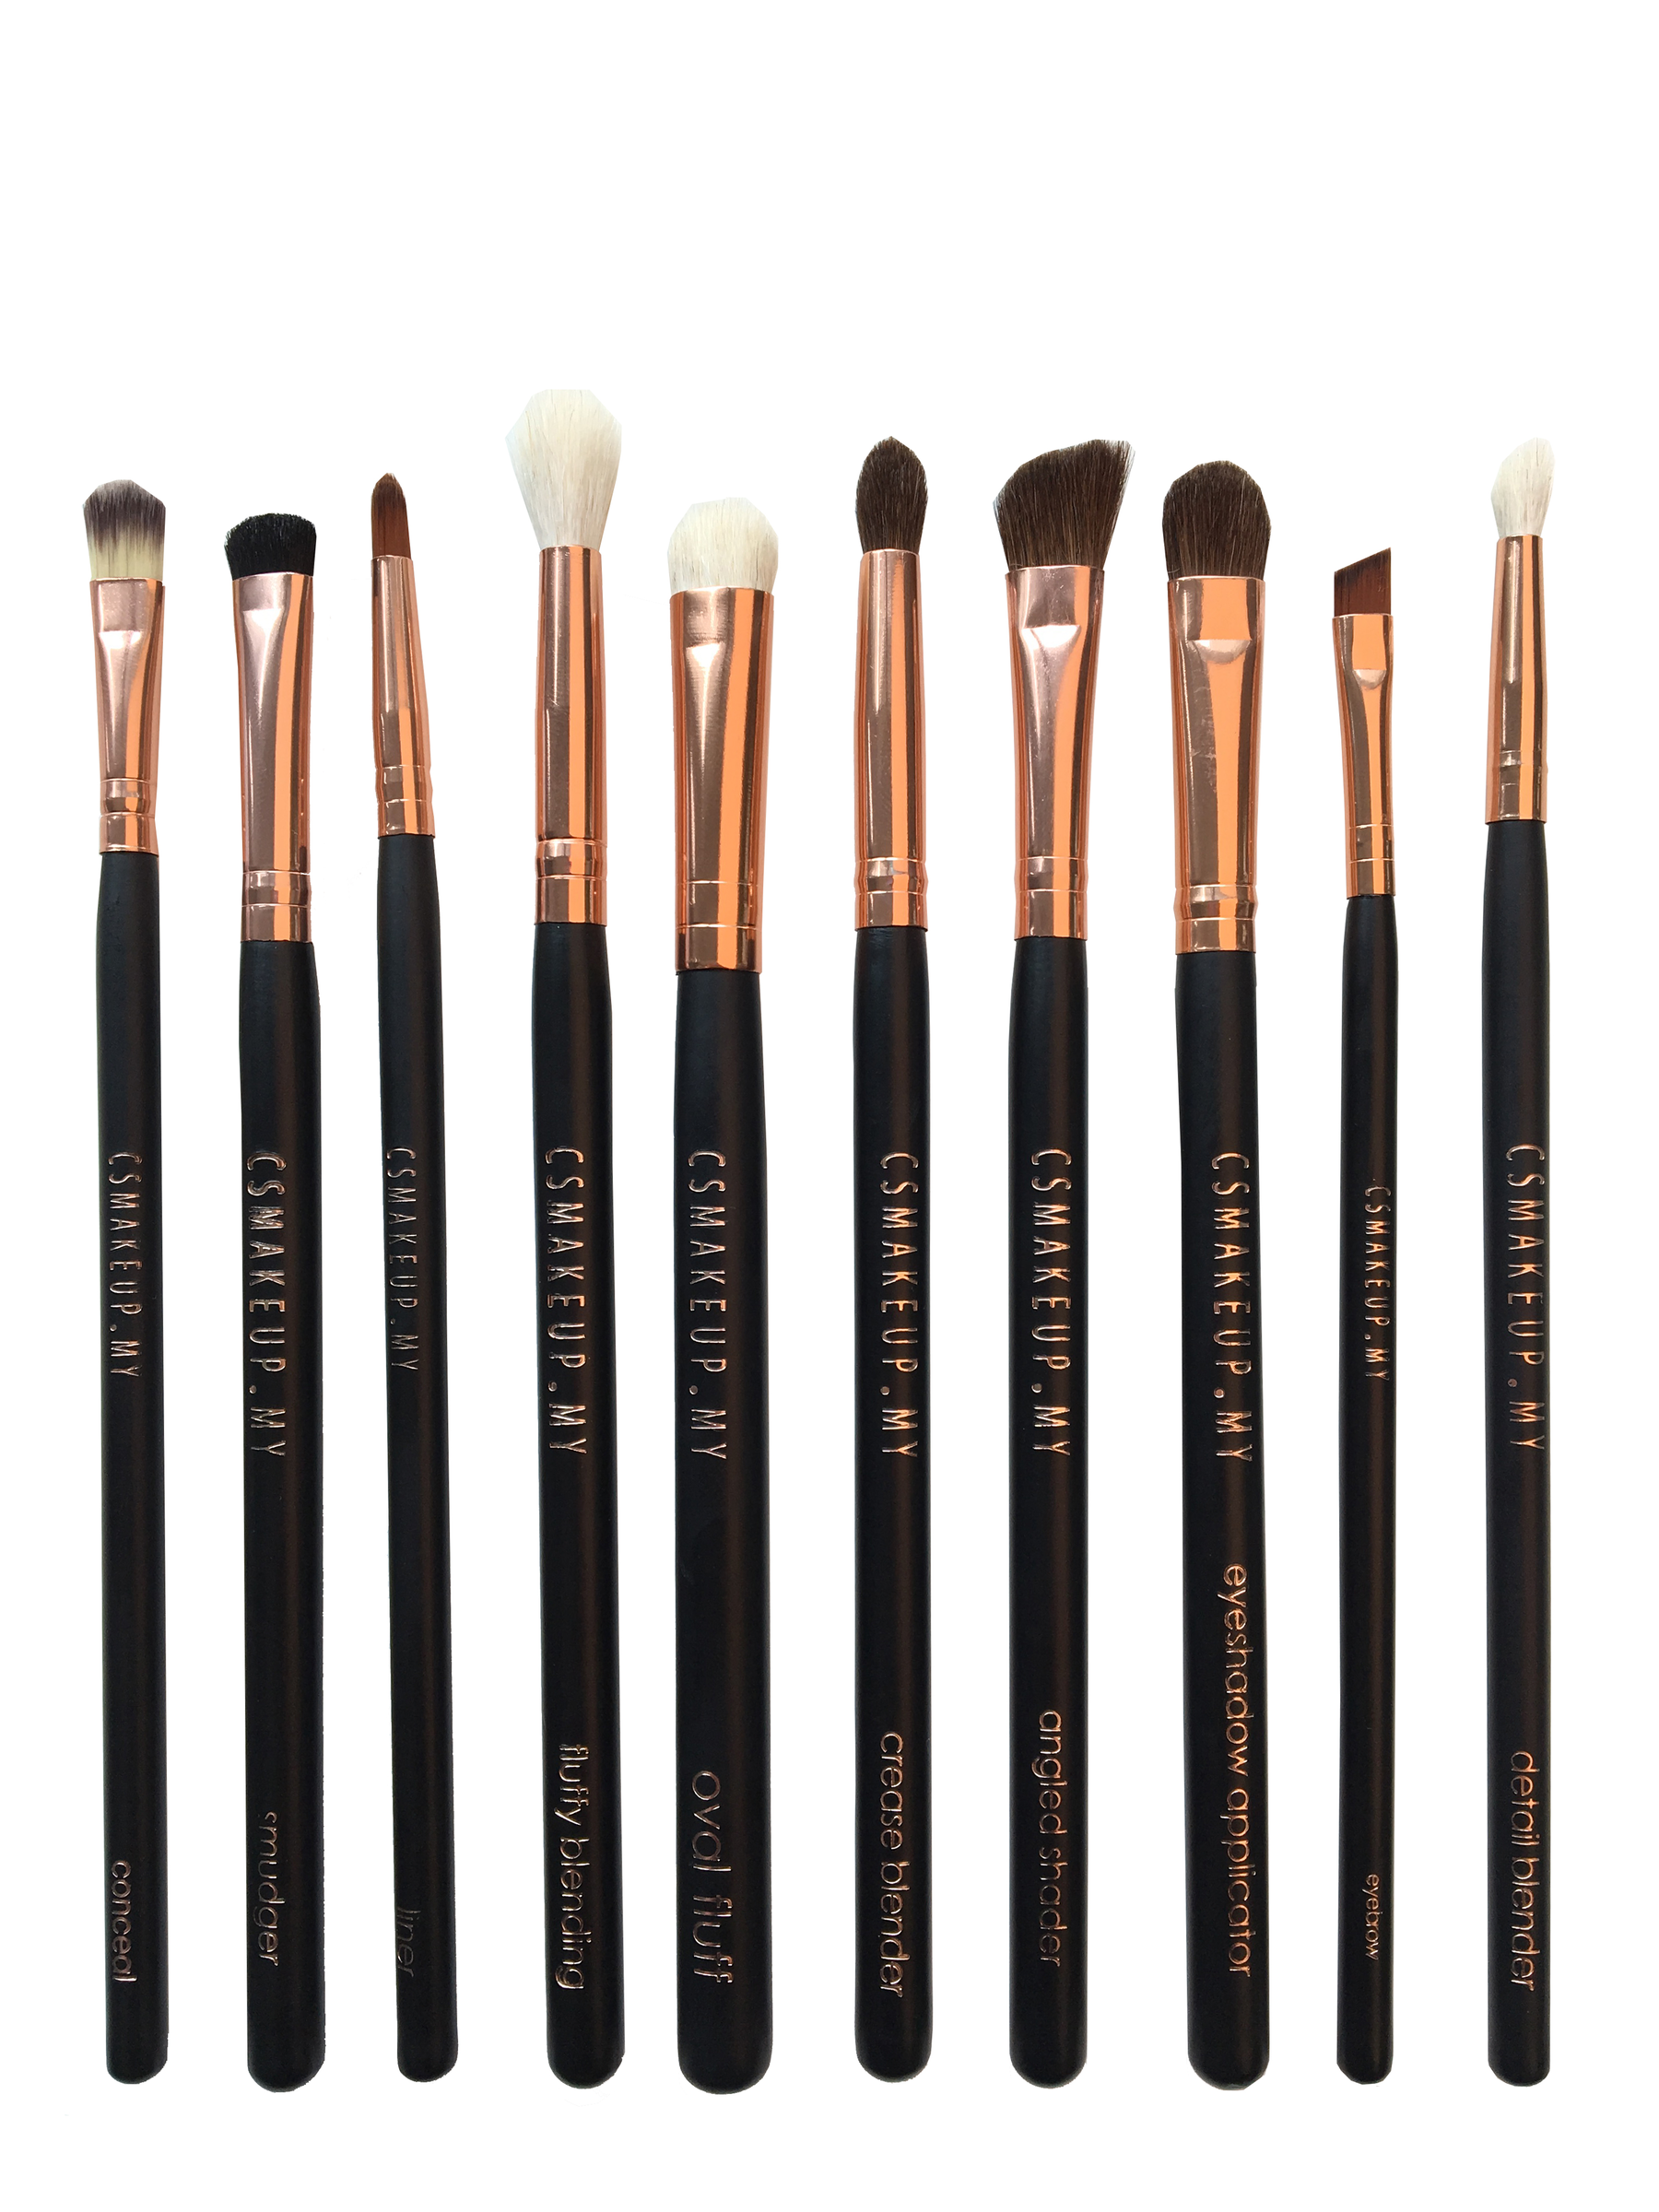 Makeup Brushes And What They Are Used For: Makeup Brush Set